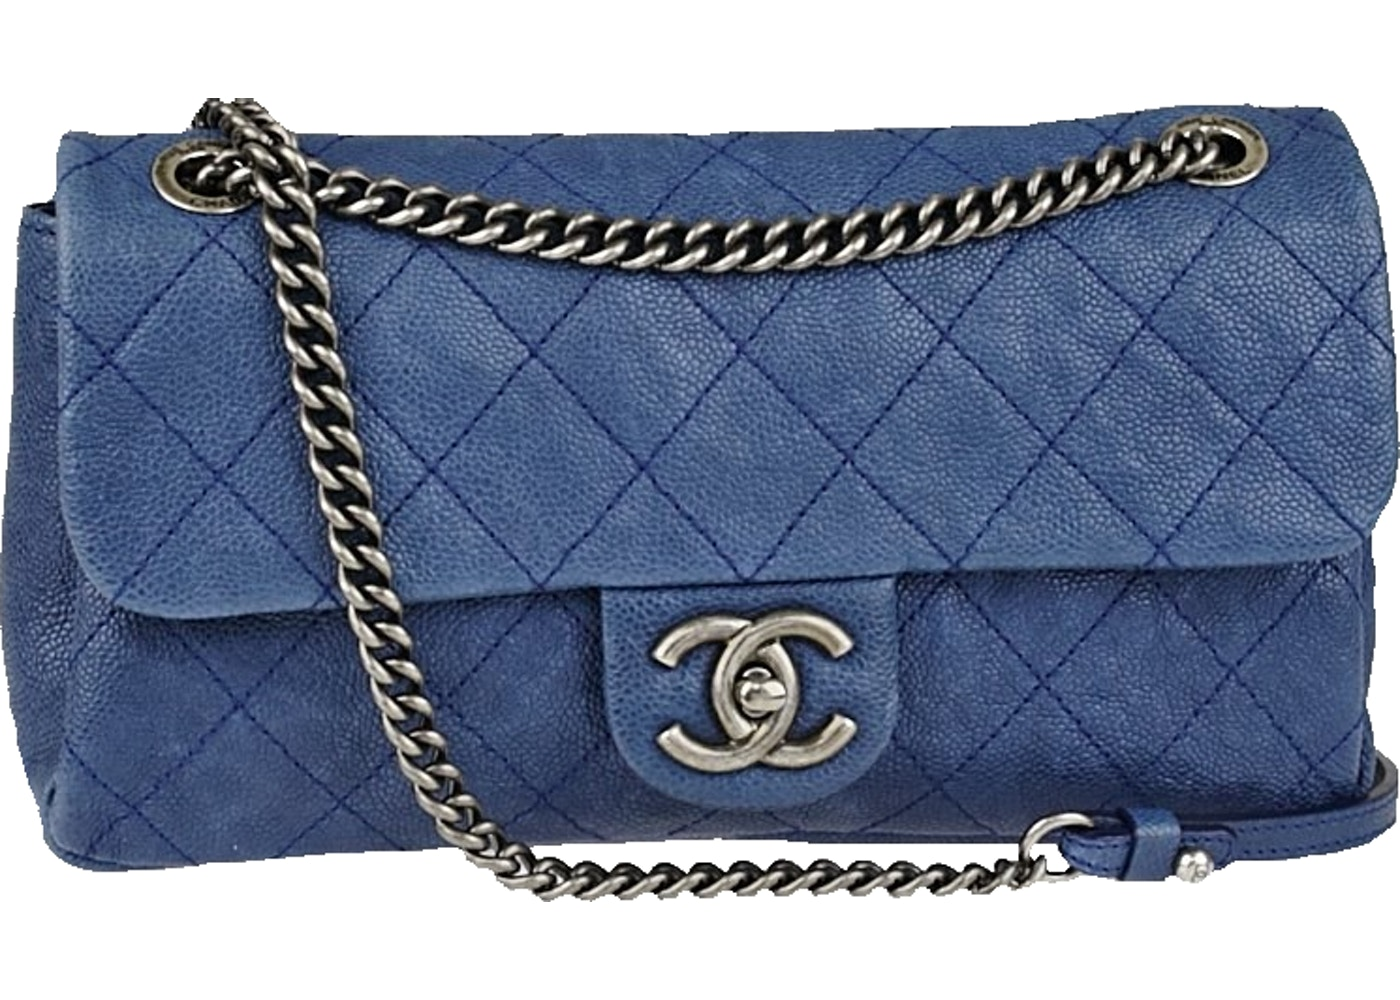 5cb7b7a2b6e7 Chanel Flap Lady Pearly Quilted Aged Medium Blue